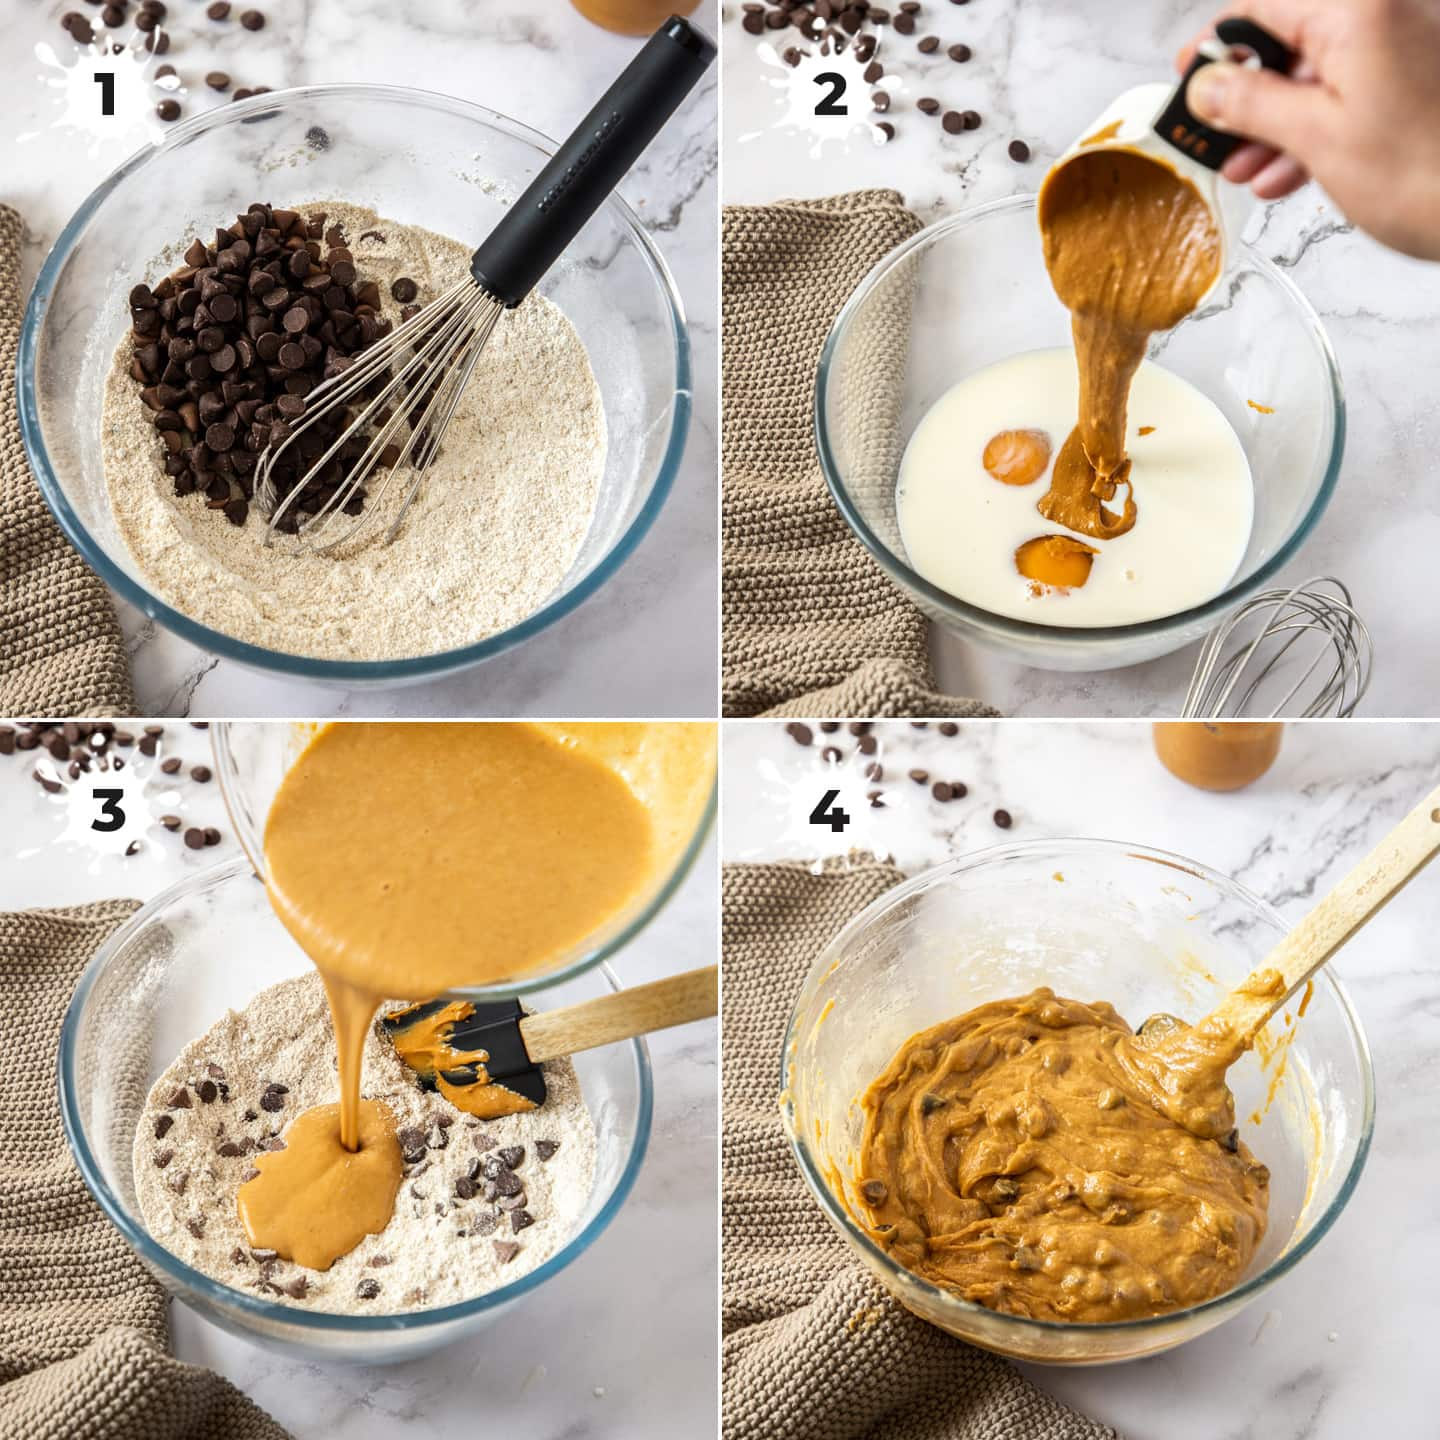 Collage of 4 images showing the making of batter in a glass bowl